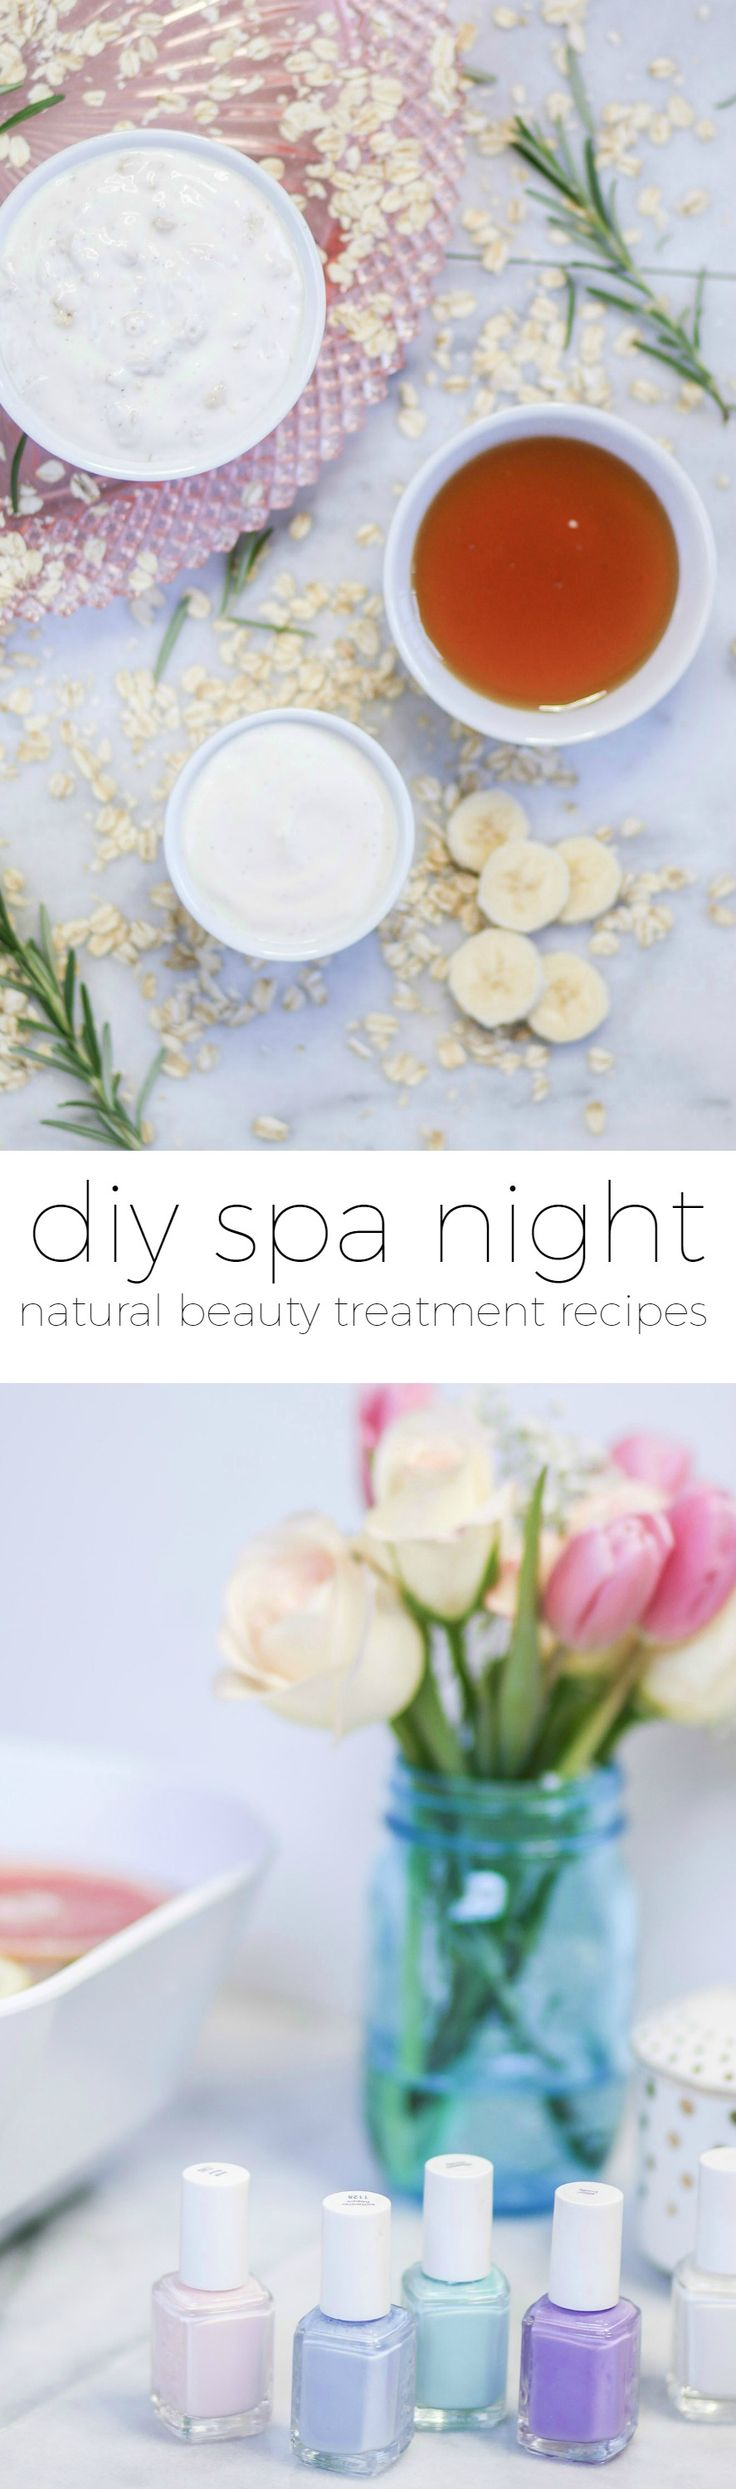 Learn how to create a luxurious spa night at home with these easy DIY spa treatment recipes. You'll learn how to make a DIY lip scrub, moisturizing hair mask, soothing face mask, and chamomile hair rinse in this post with all-natural, affordable ingredients. Click through this pin to see all of the DIY beauty recipes and skin care tips from beauty blogger Ashley Brooke Nicholas! | Sponsored by #crest @crest